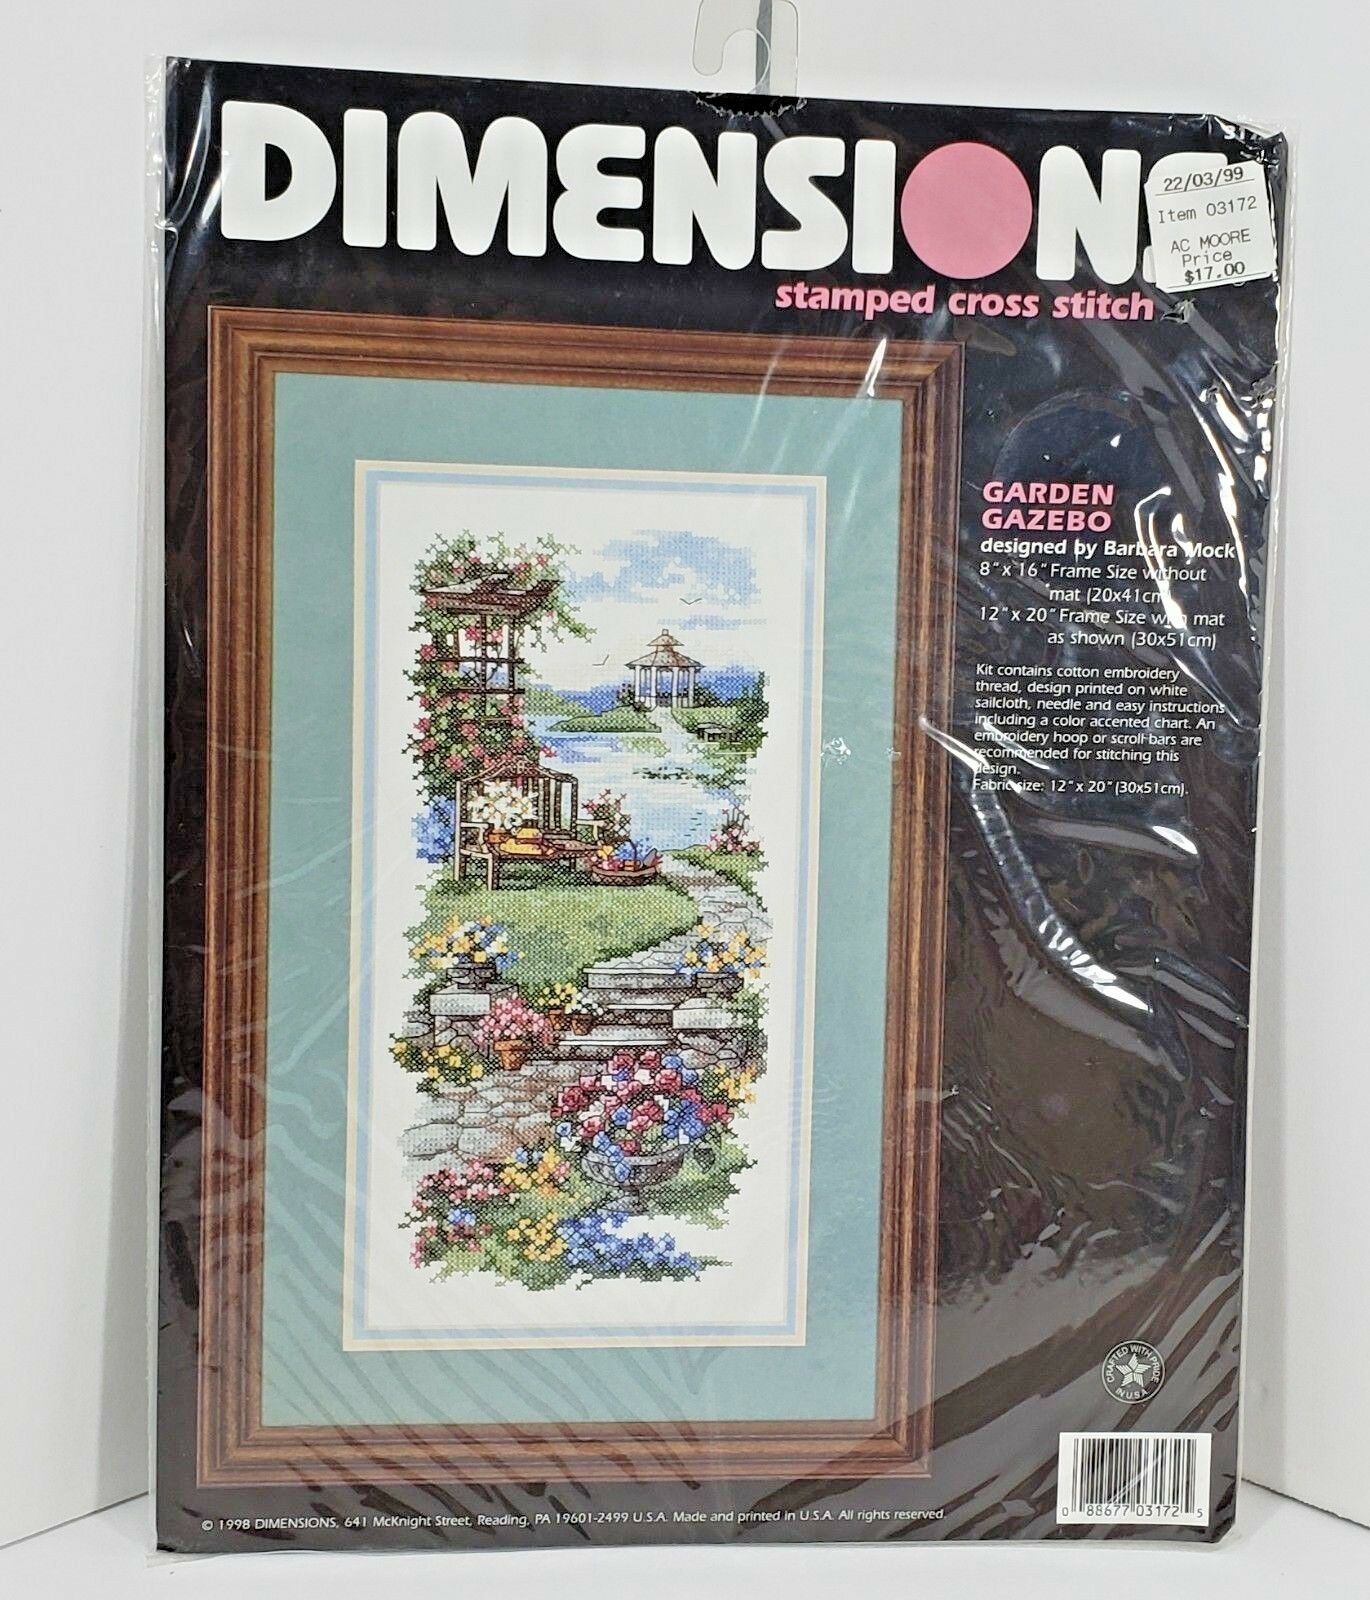 Vintage 1998 Dimensions Stamped Cross Stitch Garden Gazebo 3172 8x16